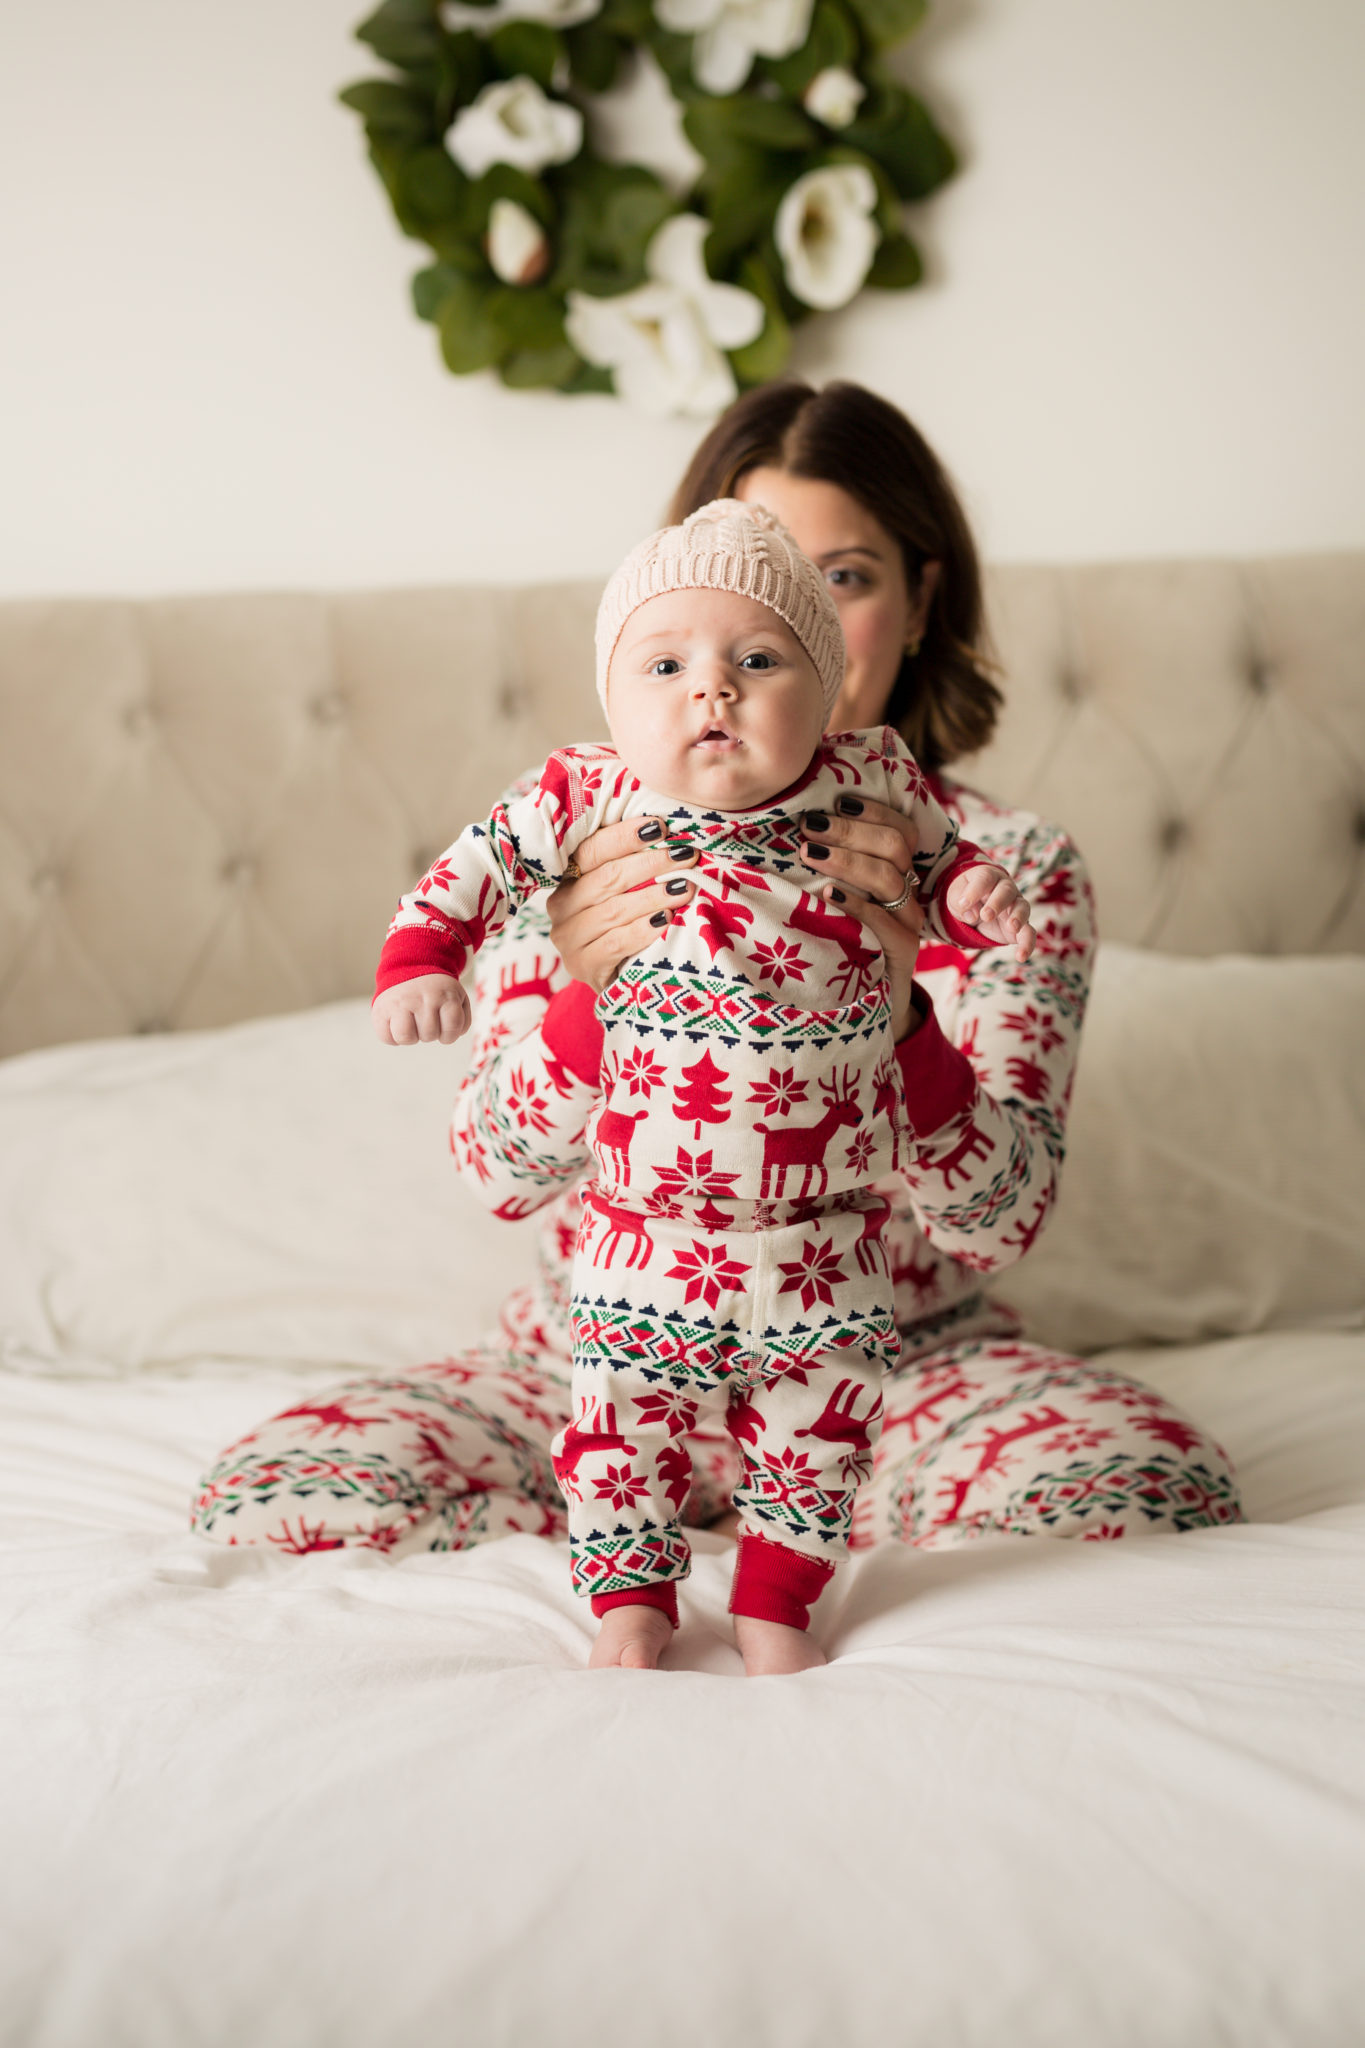 hanna andersson family matching holiday christmas pajamas 2018